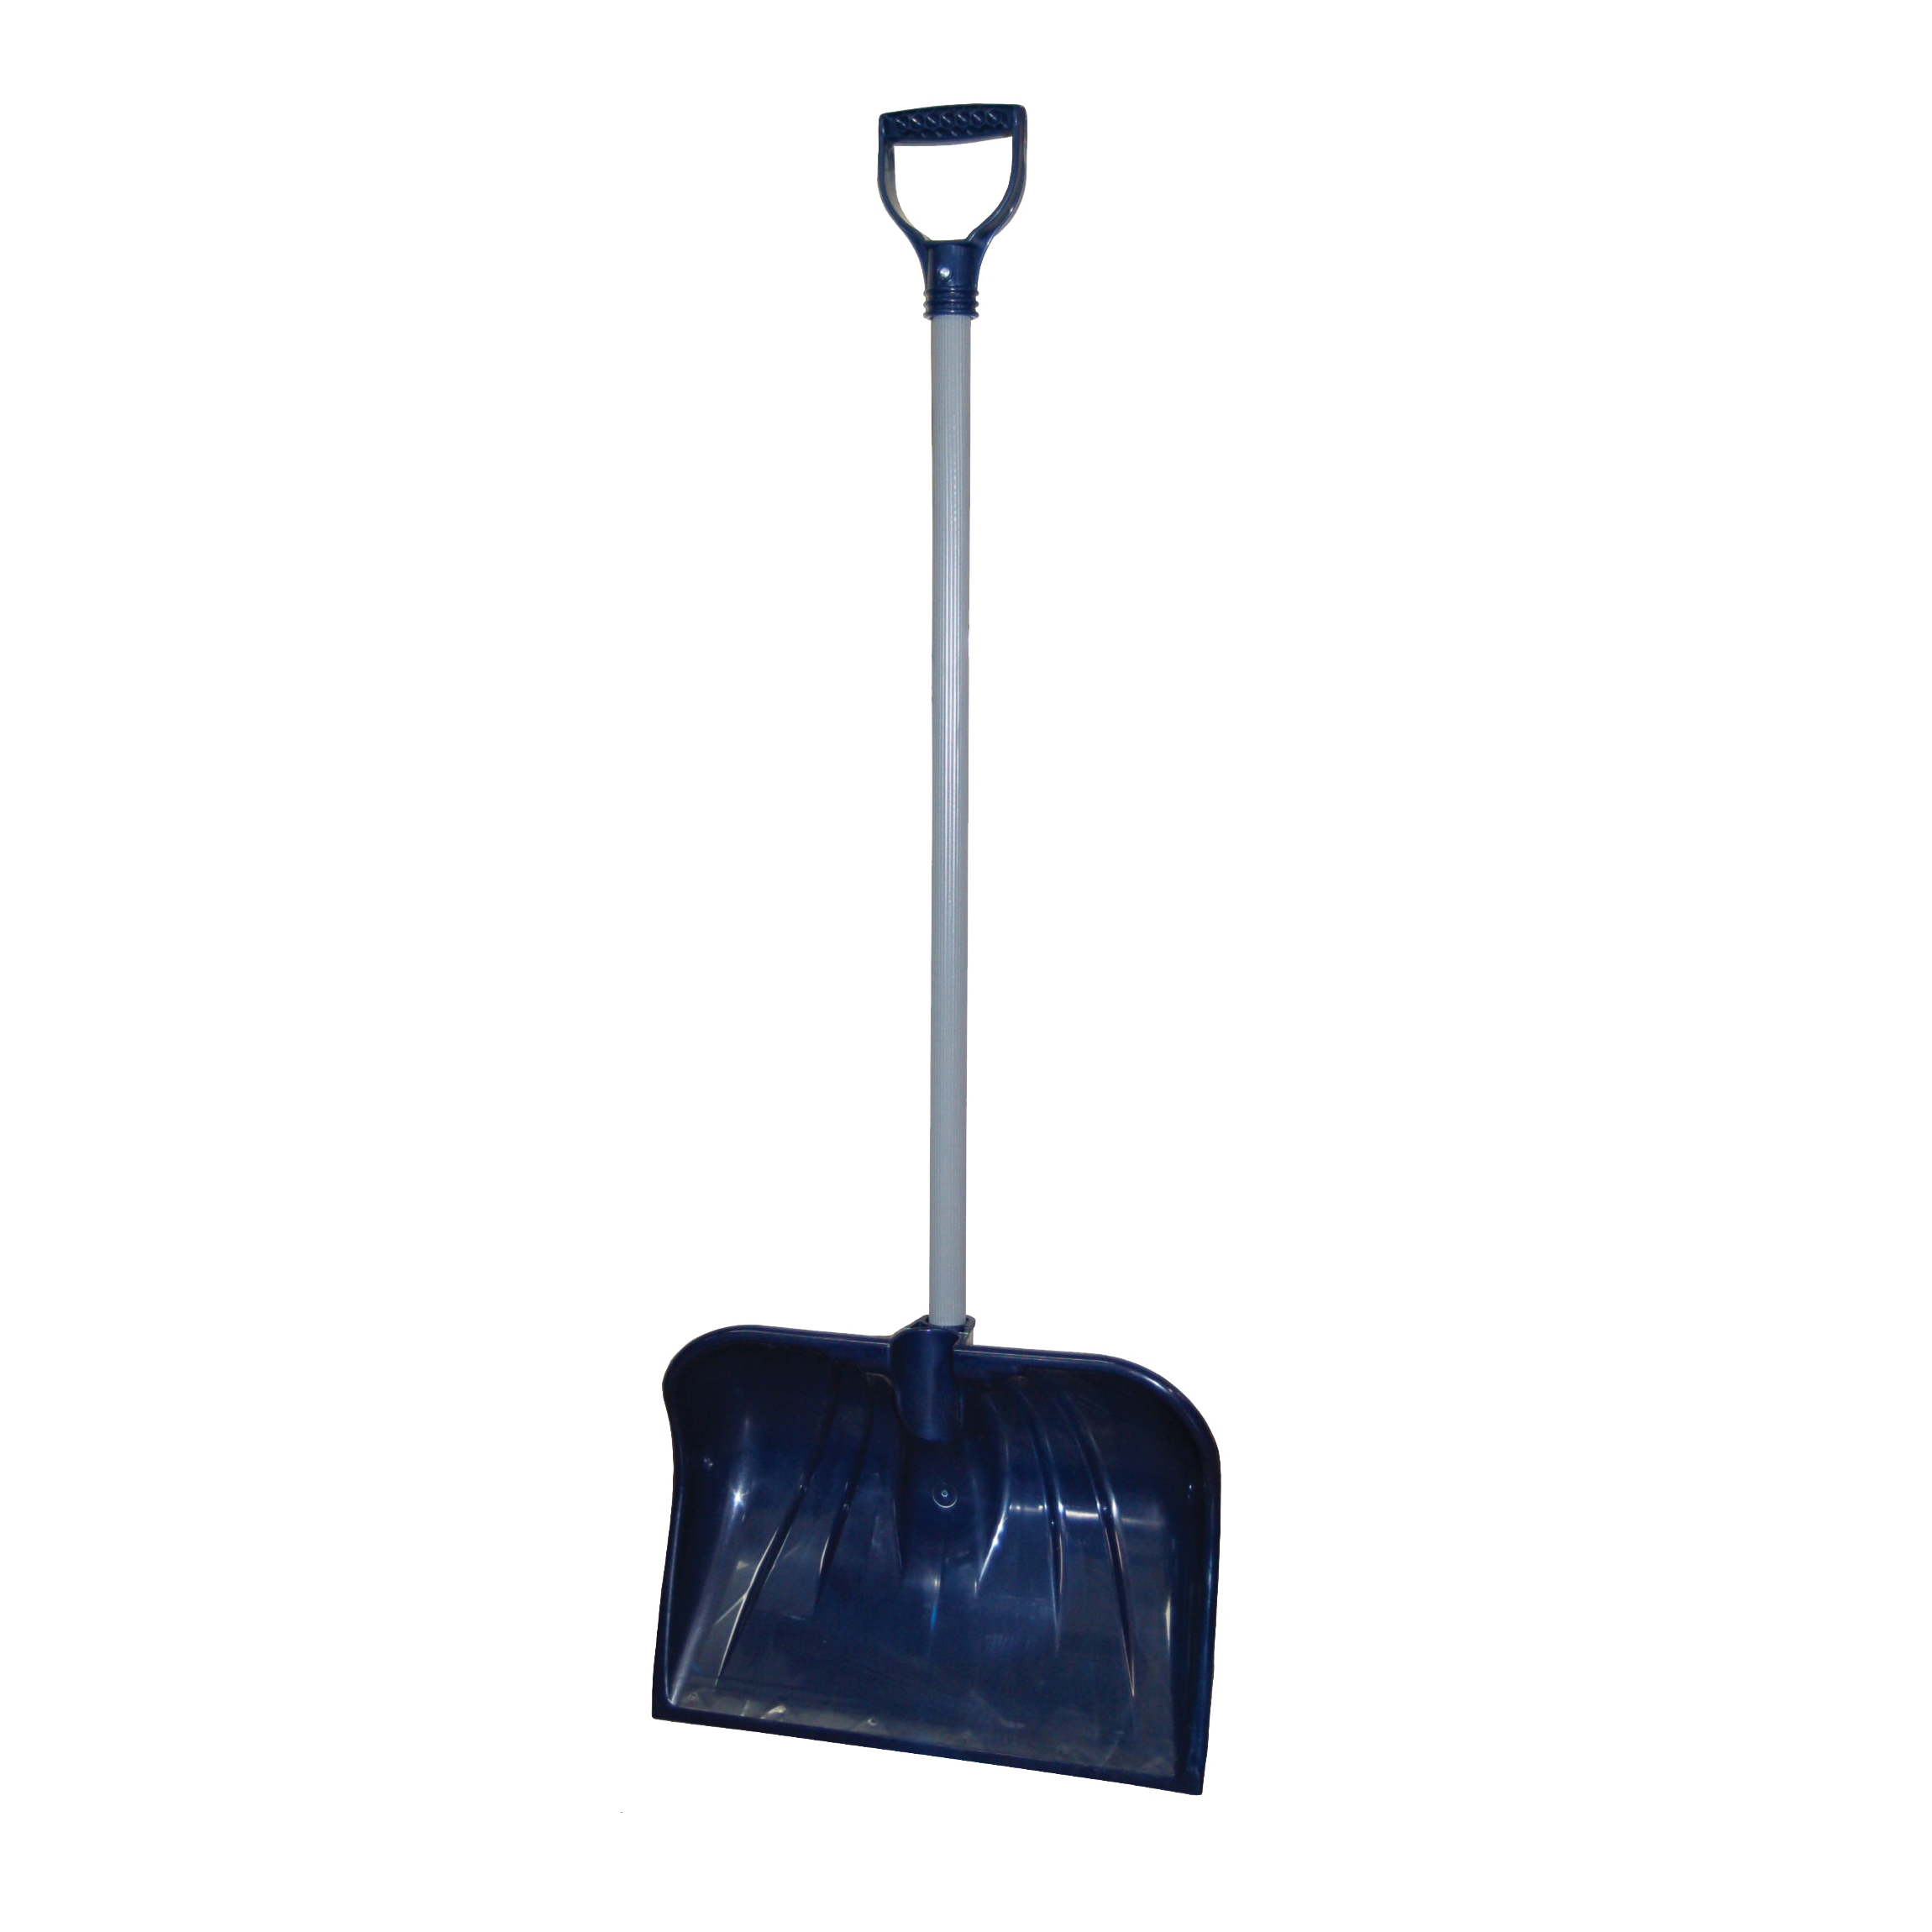 Picture of RUGG 26PDX-S Snow Shovel, 18 in W Blade, Combo Blade, Polyethylene Blade, Steel Handle, Navy